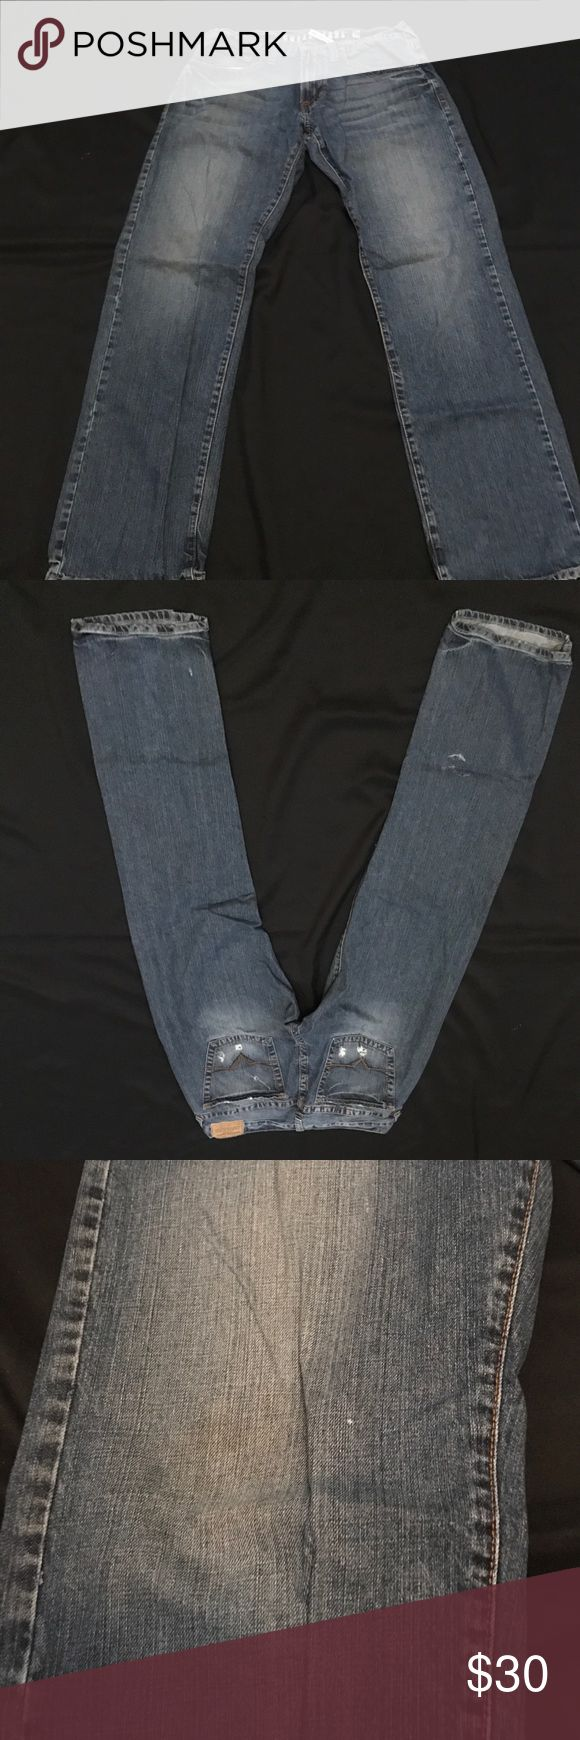 GUESS JEANS REBEL STRAIGHT LEG 36 GUESS JEANS --  Used --- Good condition few stains,  look at the pictures before purchase, SIZE 36 MENS GUESS JEANS REBEL STRAIGHT LEG Guess Jeans Straight